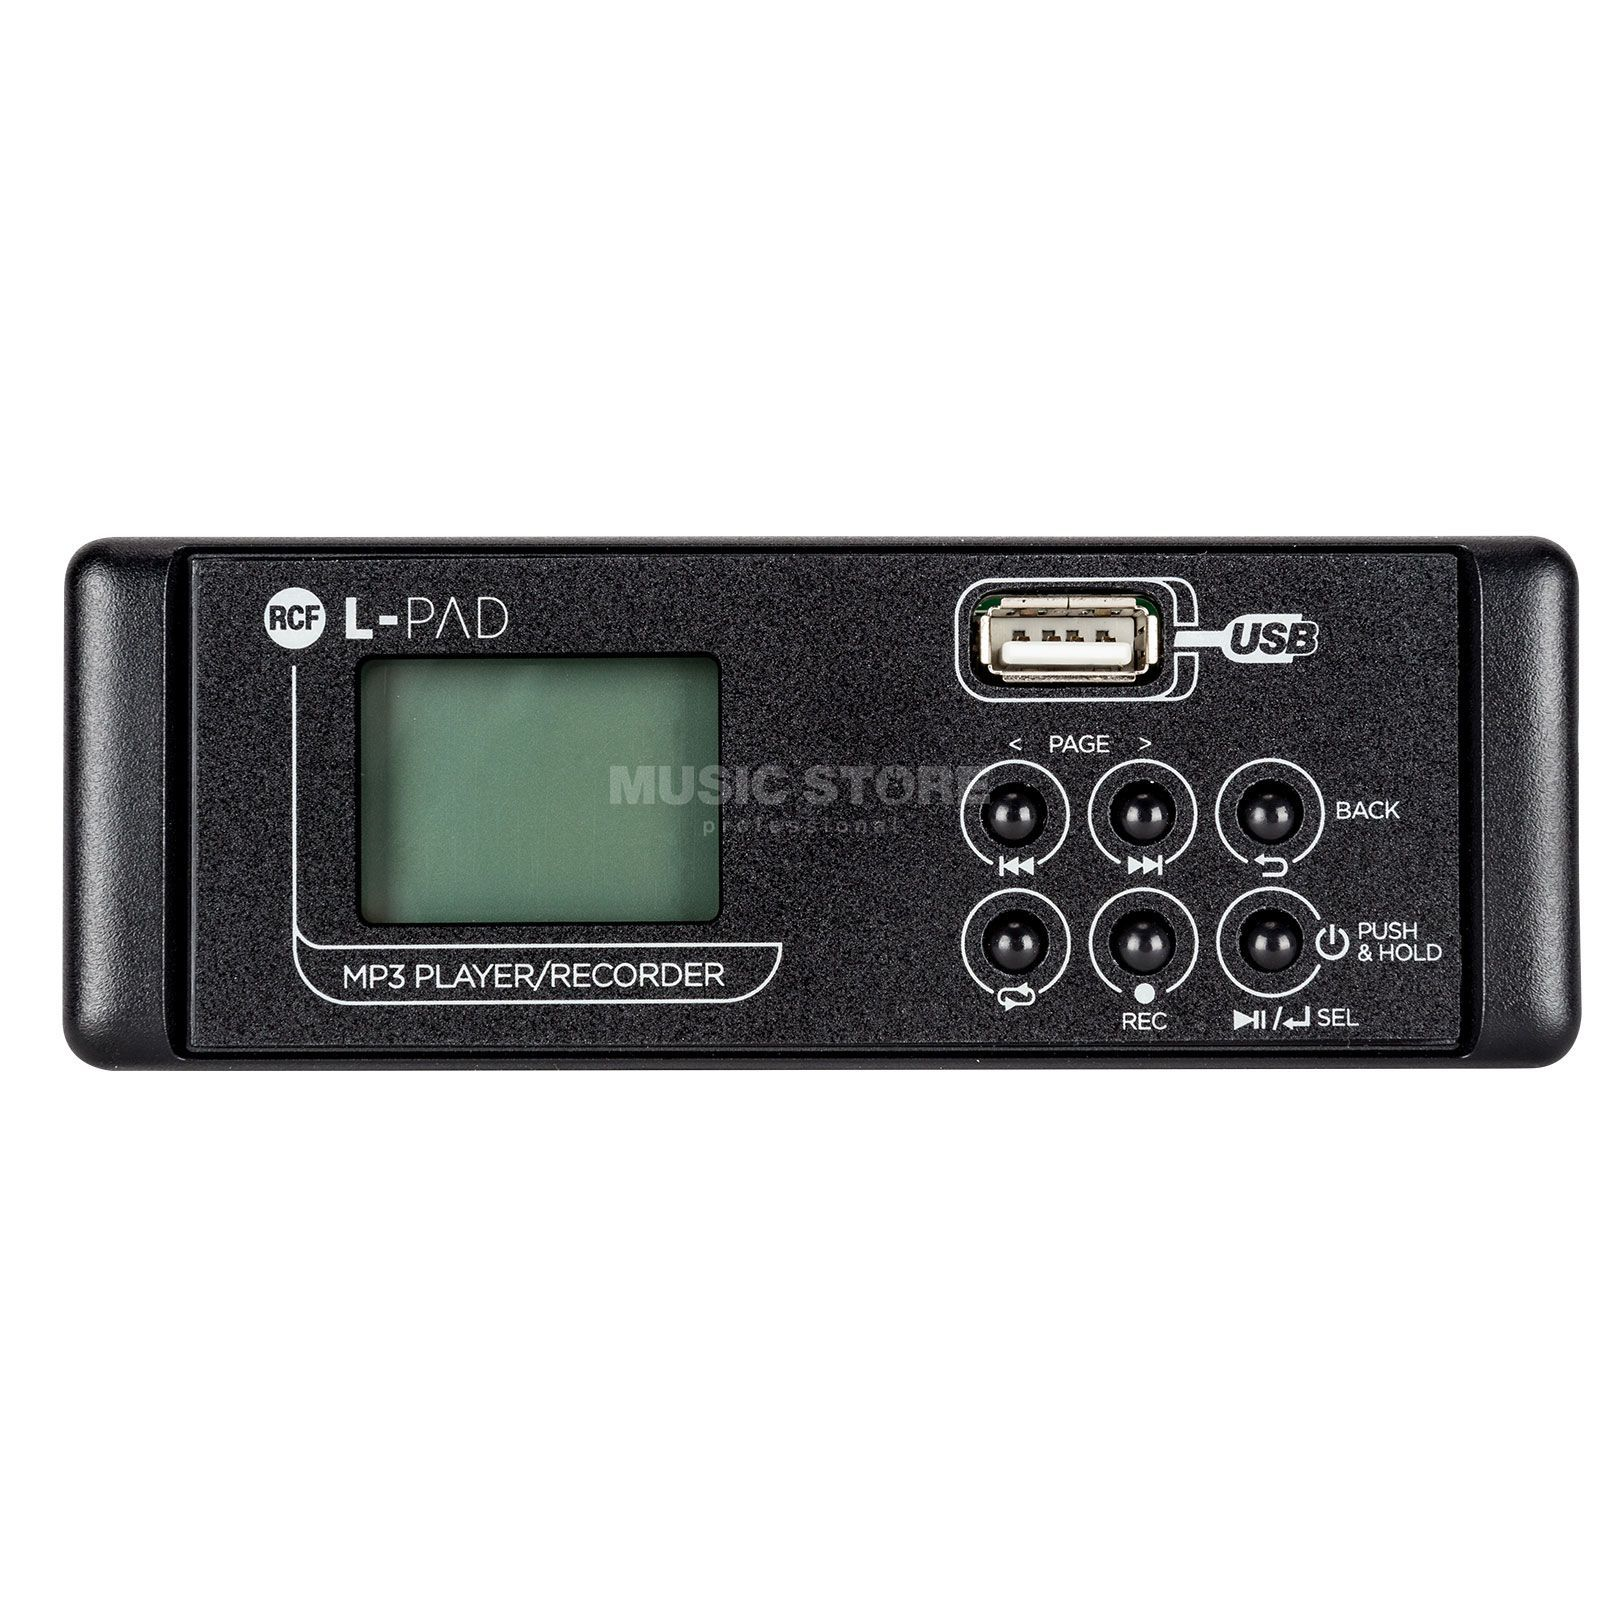 RCF L-PAD MP3 Player/Recorder Card MKII Product Image